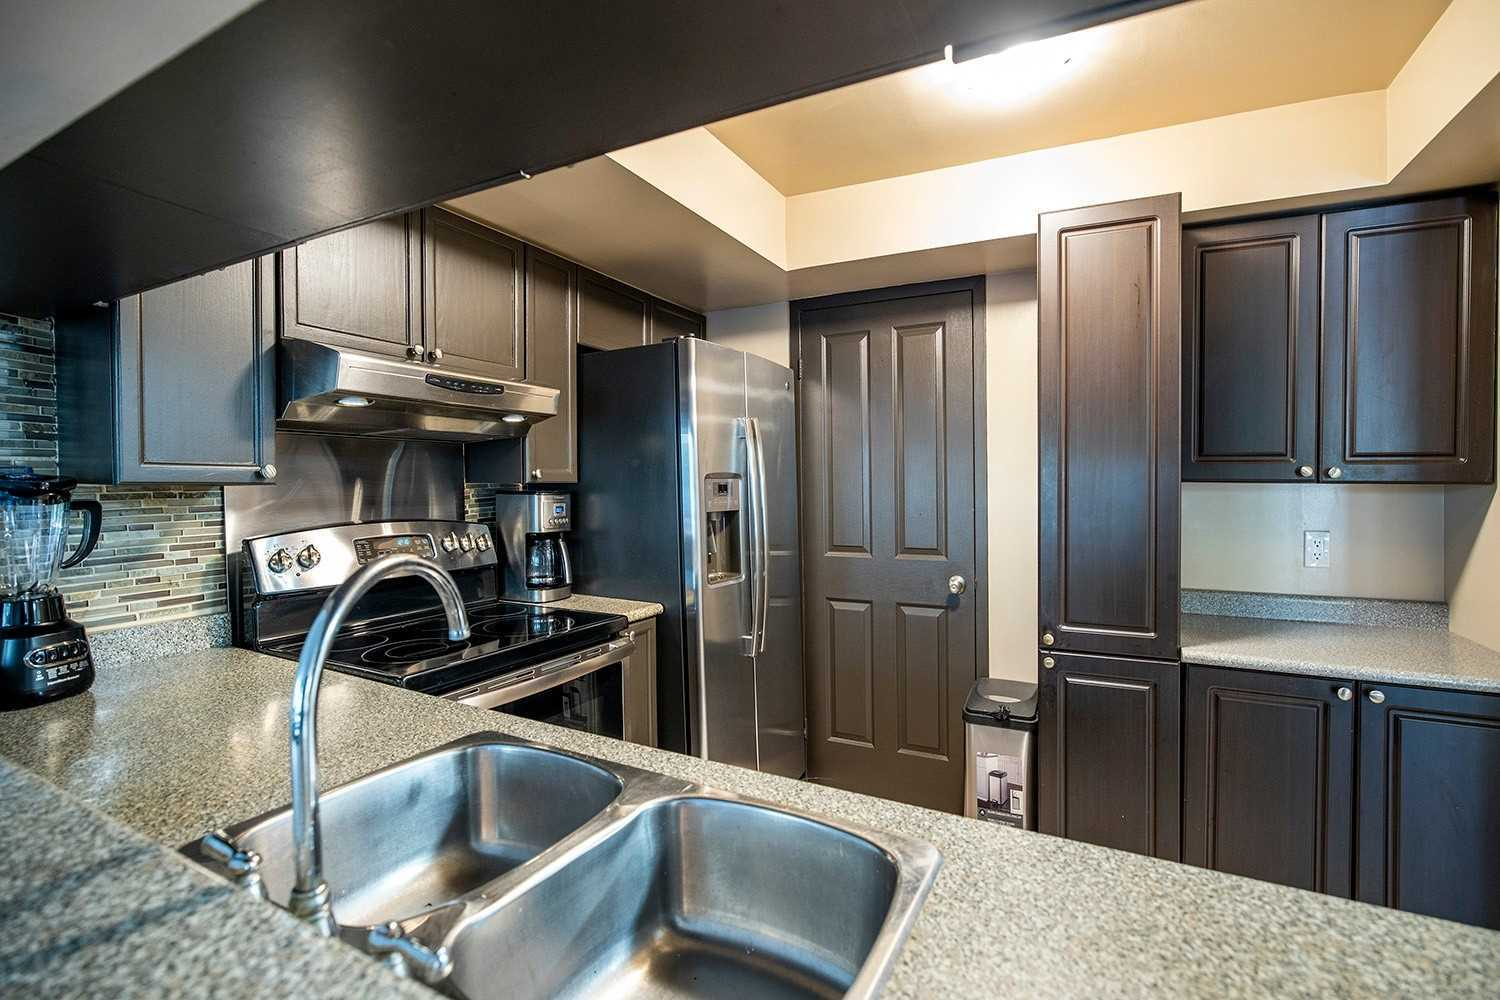 Image 16 of 20 showing inside of 2 Bedroom Condo Apt 2-Storey for Sale at 25 Cumberland Lane Unit# 112, Ajax L1S7K1